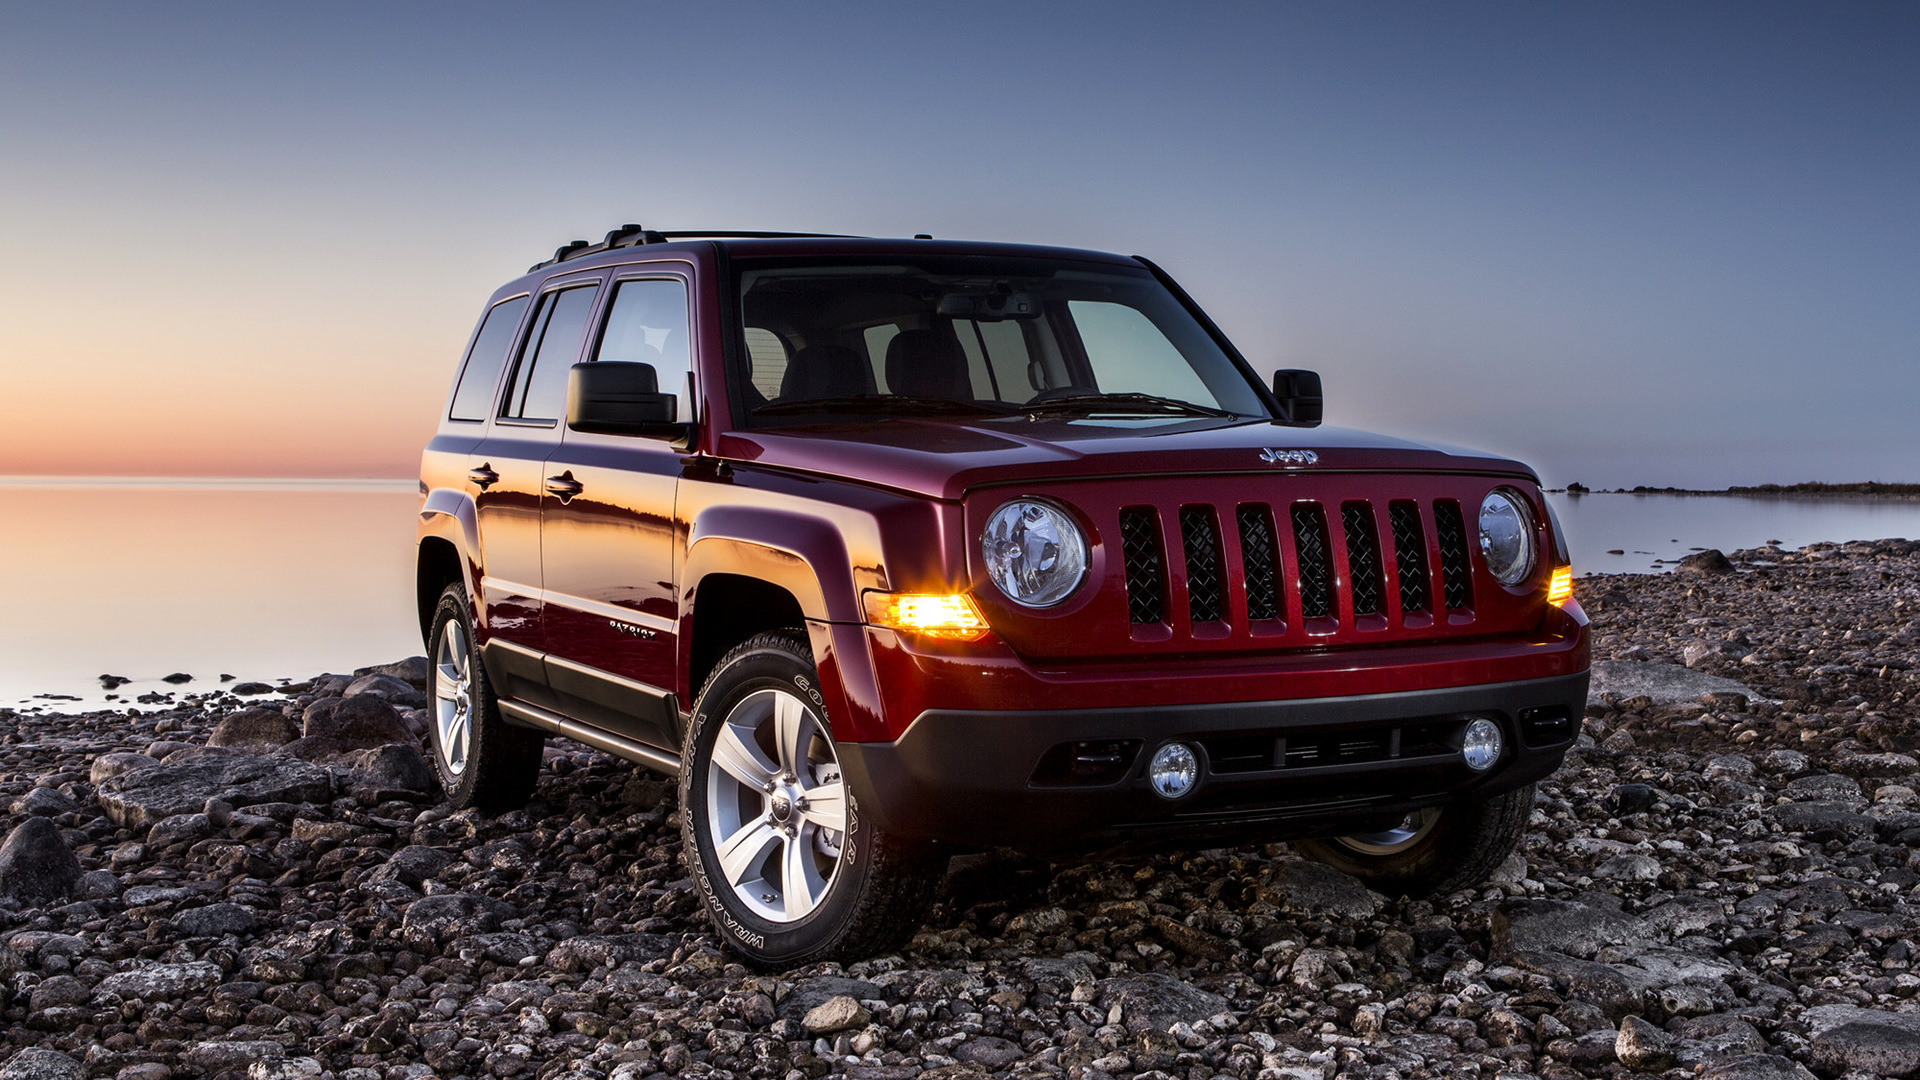 Patriot Buick Gmc >> 2010 Jeep Patriot - Wallpapers and HD Images | Car Pixel